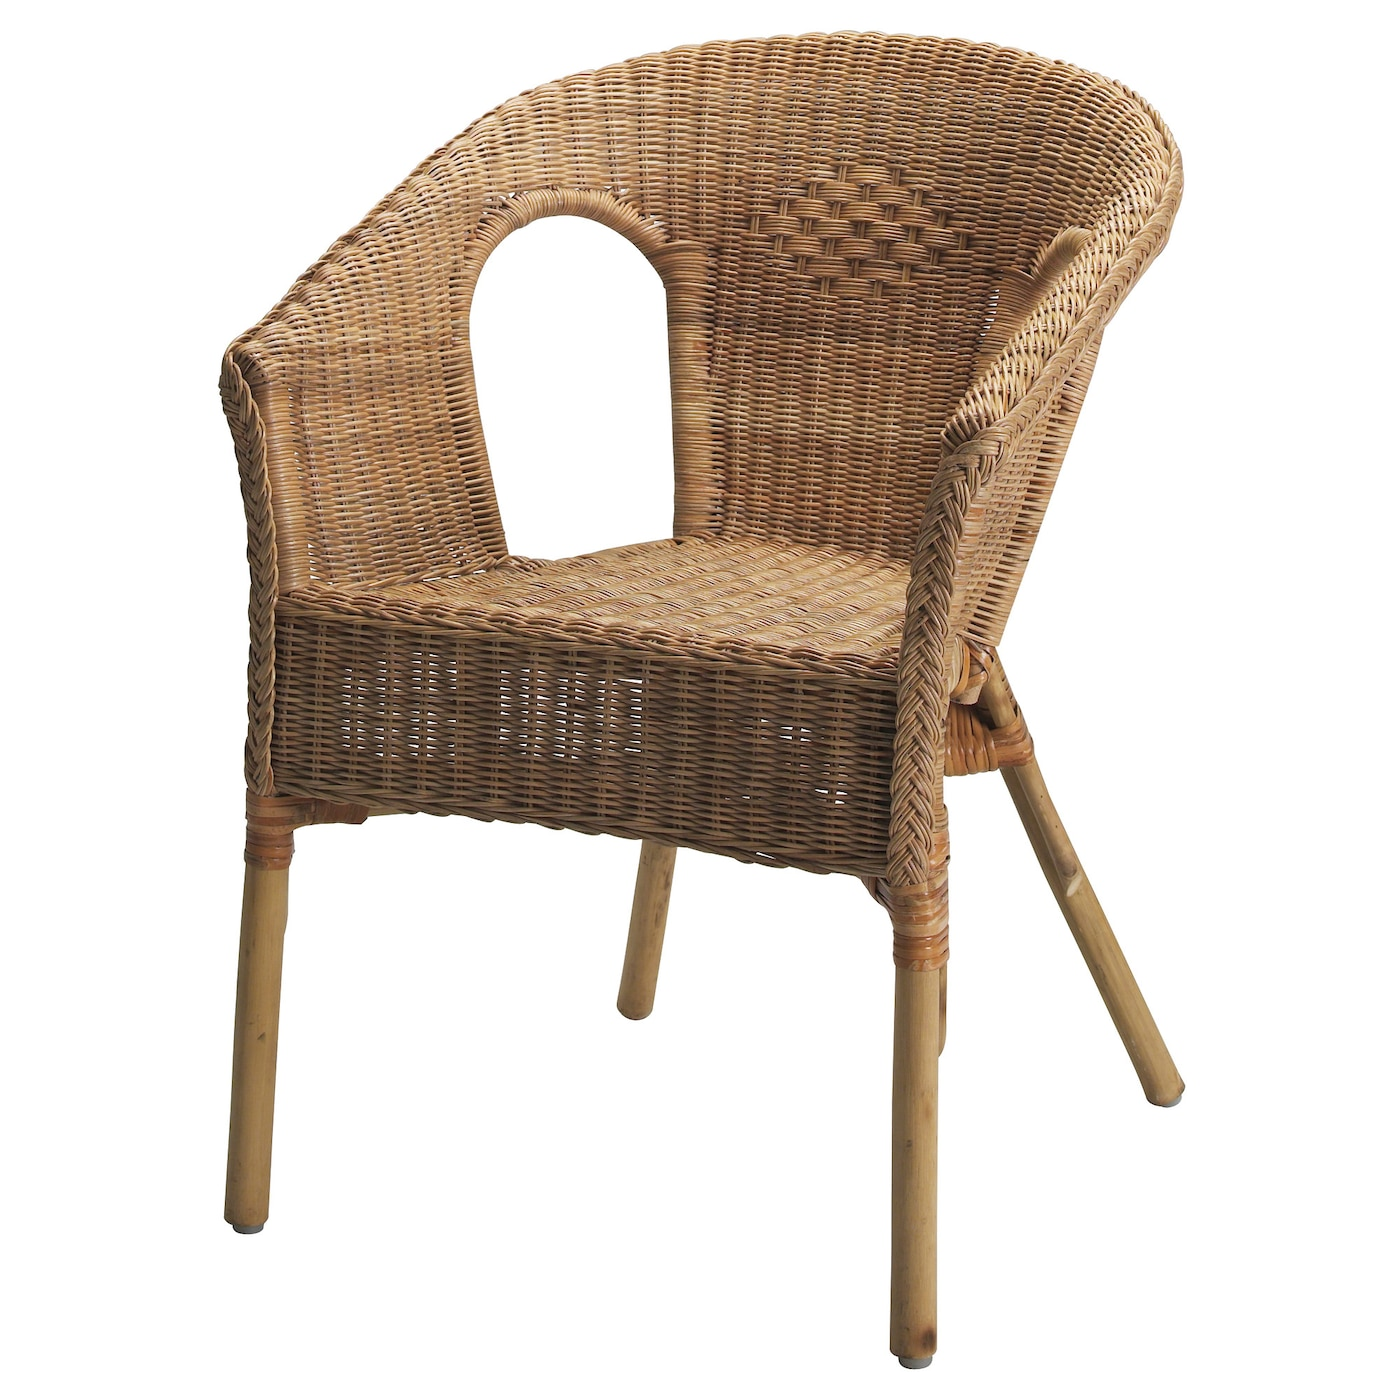 Ikea Agen Chair Handwoven Each Piece Of Furniture Is Unique